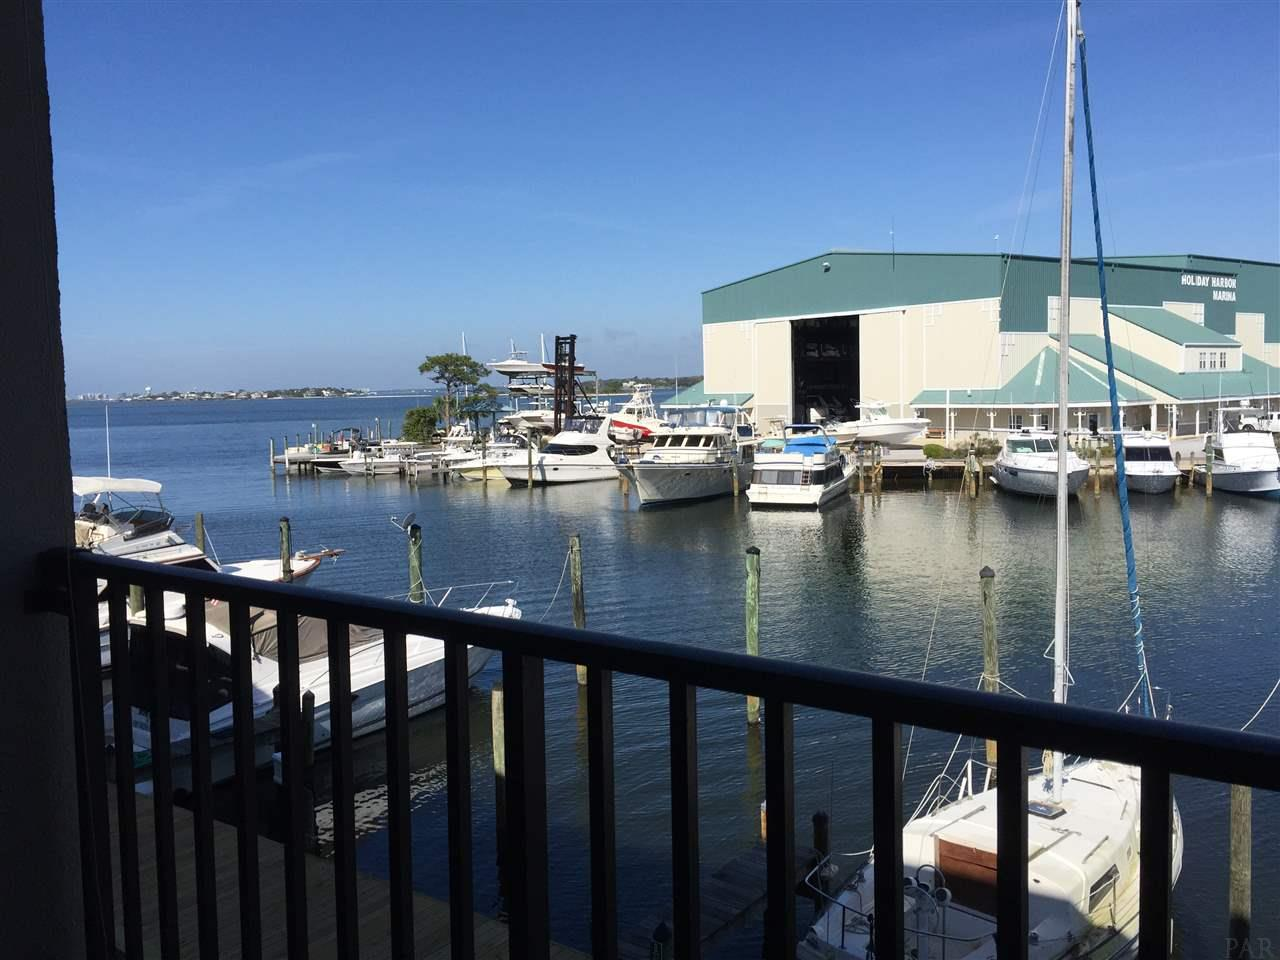 14100 RIVER RD, Perdido Key, Florida